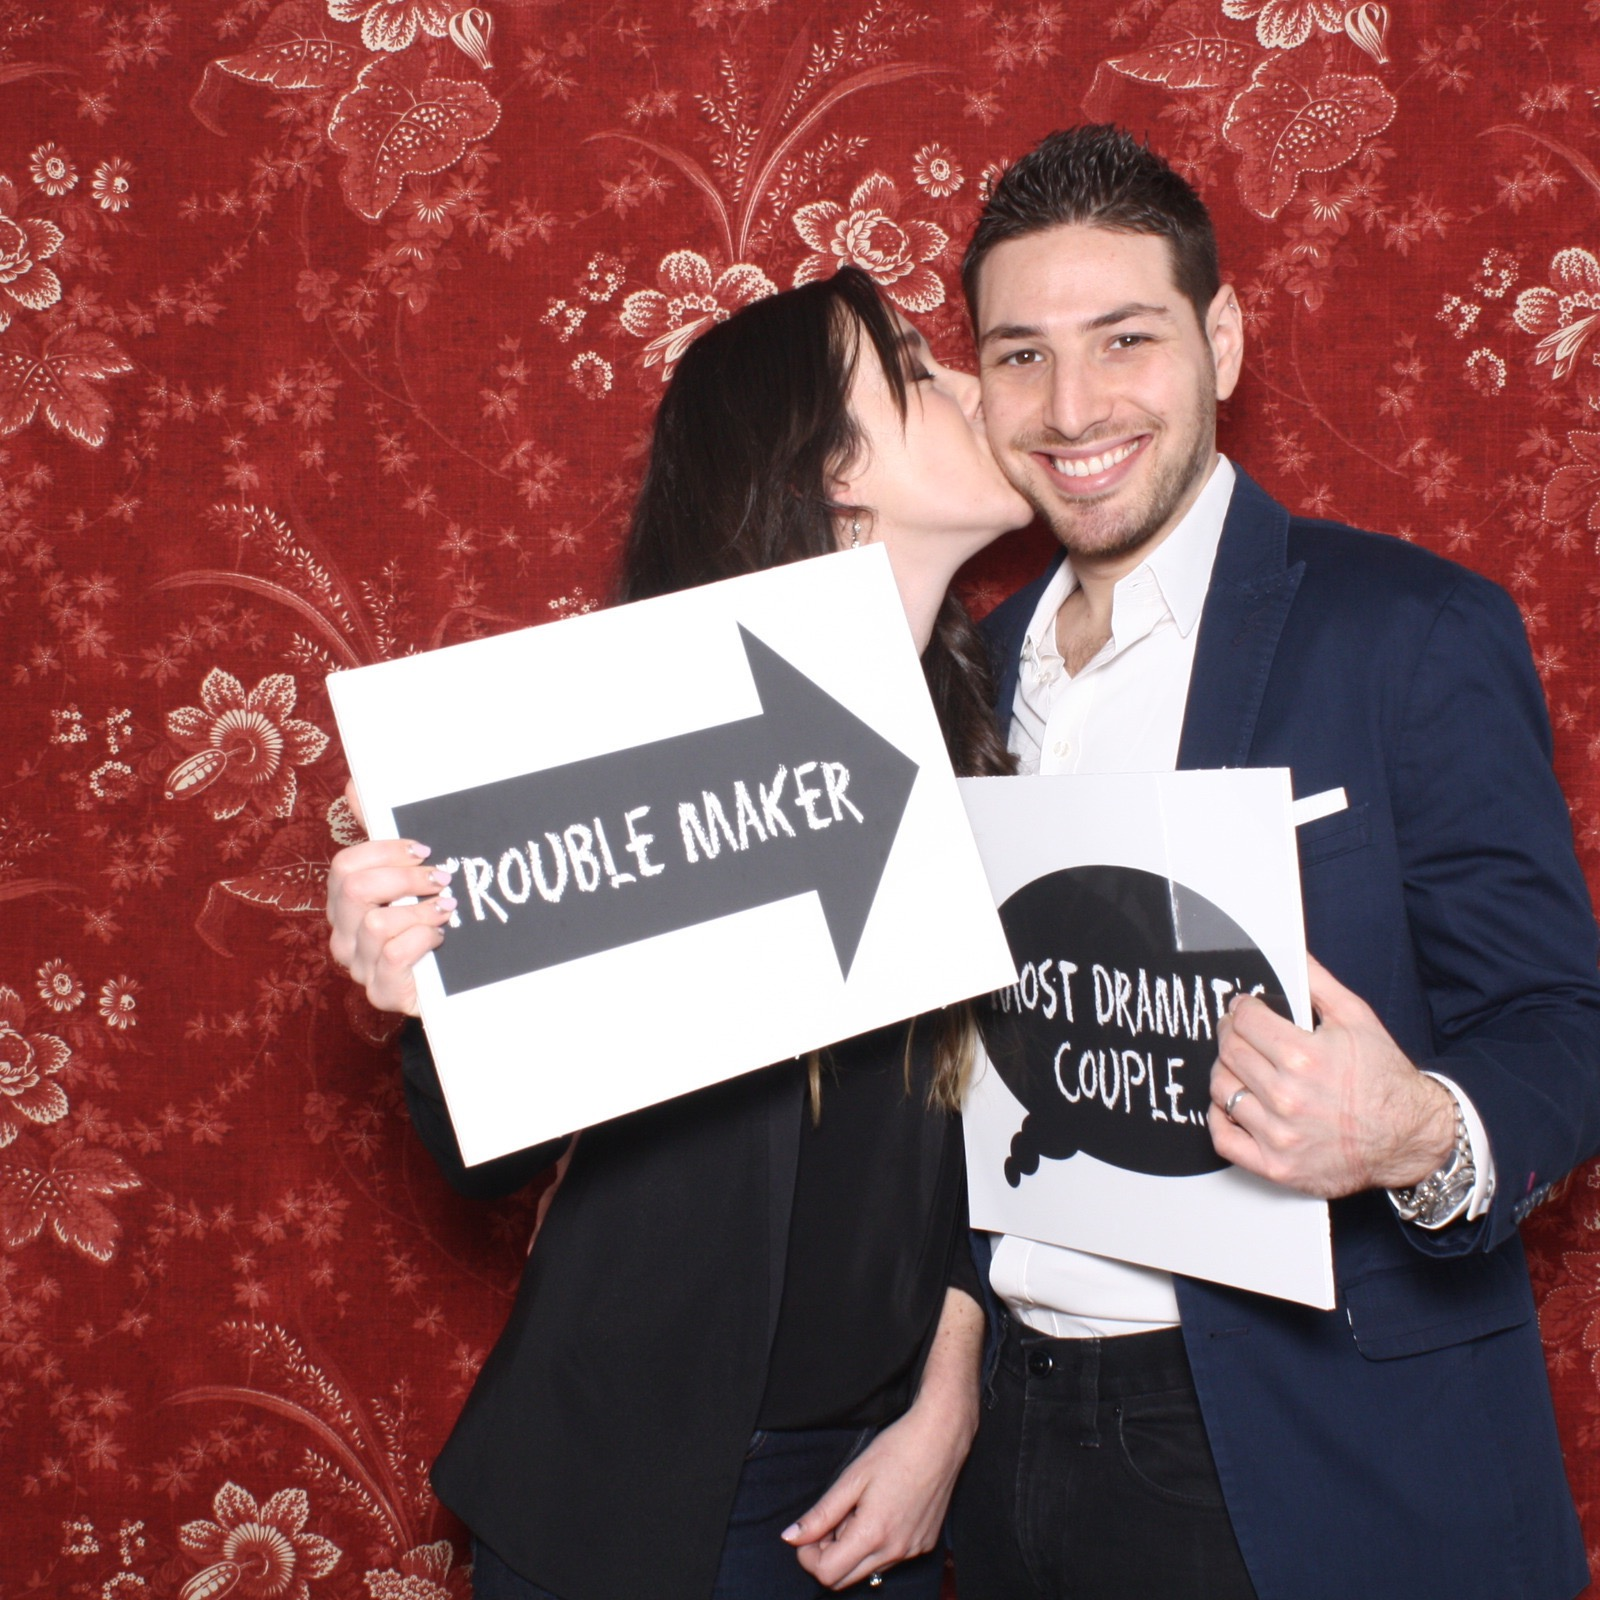 jose_rolon_events_we_love_photobooth1.jpg